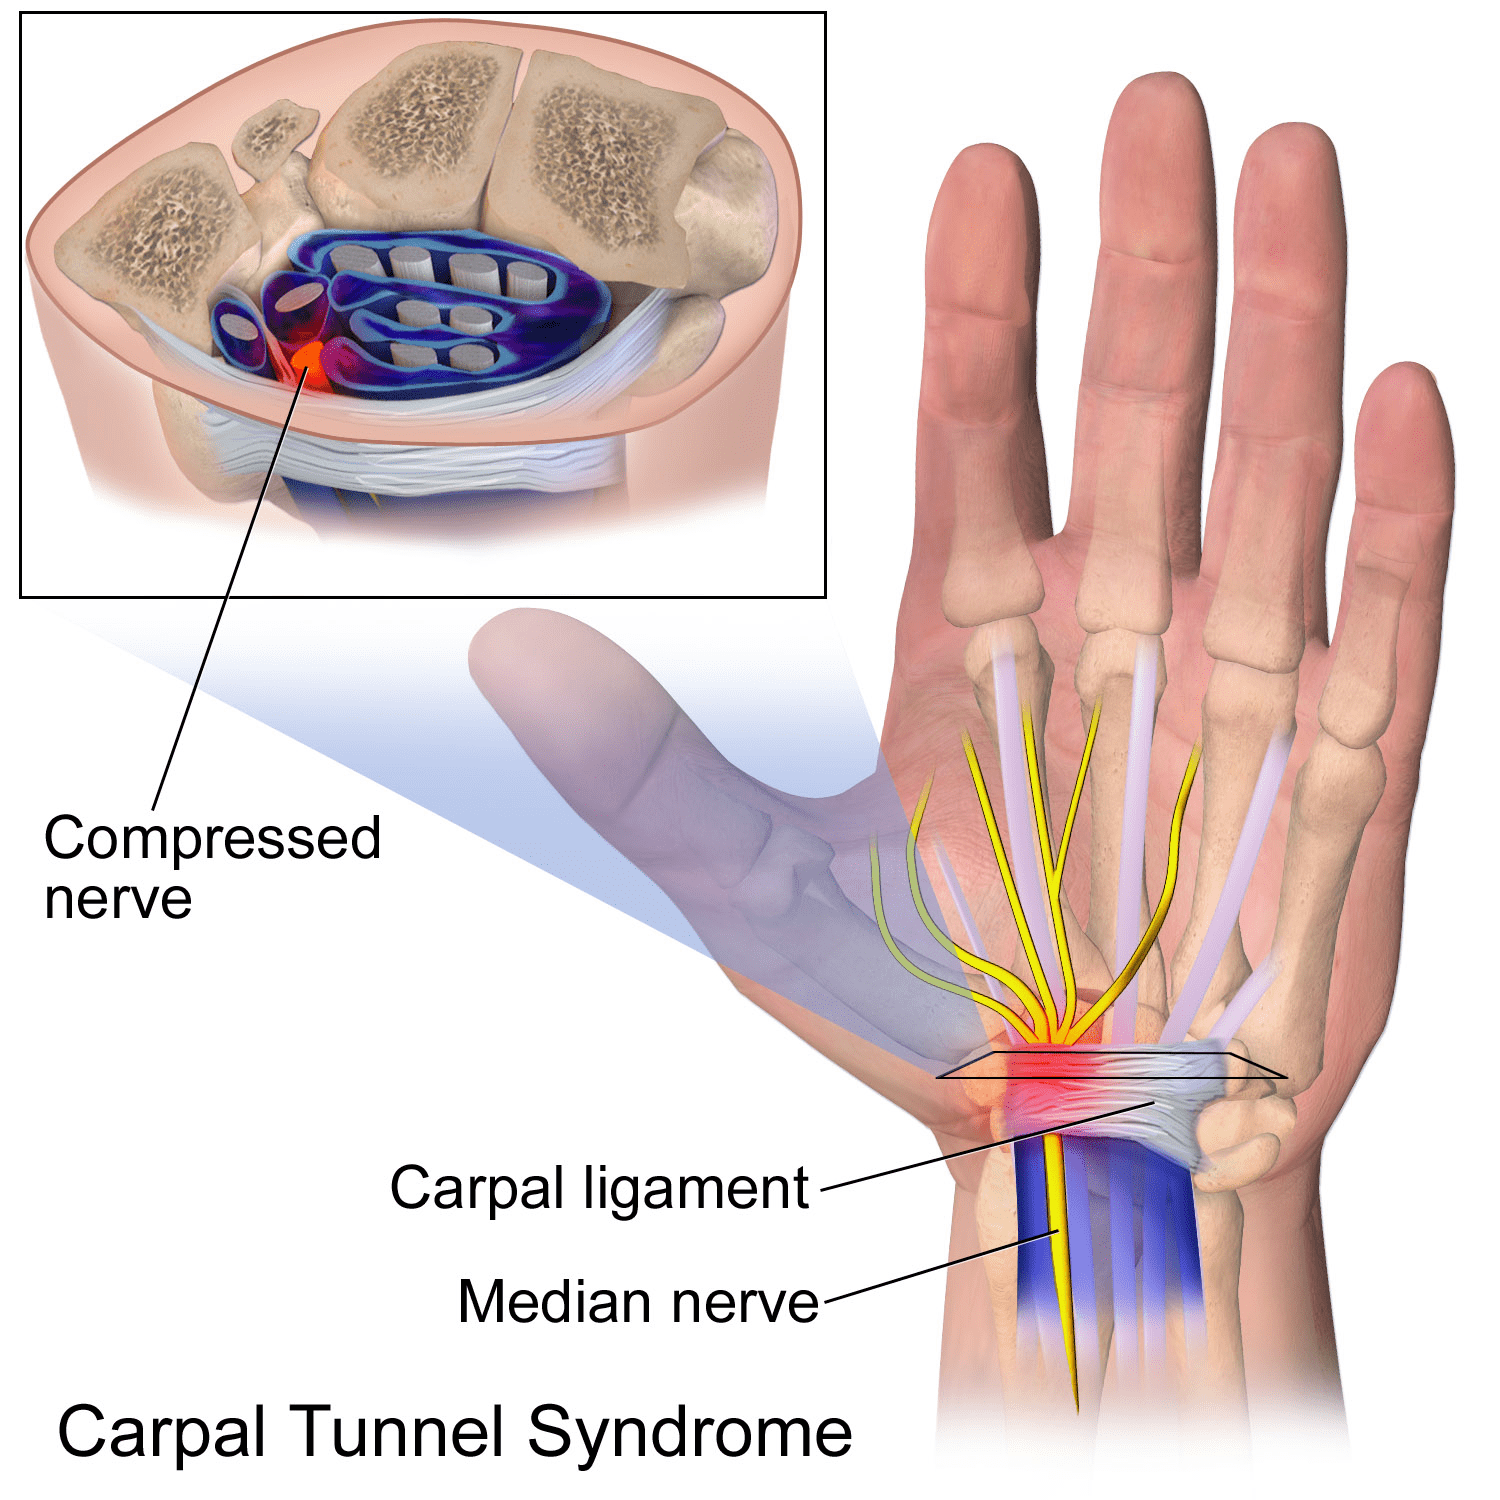 an analysis of league of legends and the carpal tunnel syndrome Carpal tunnel syndrome prevention exercises/pre-gaming league of legends community isn't all trolls/flamers it's not always carpal tunnel syndrome or.